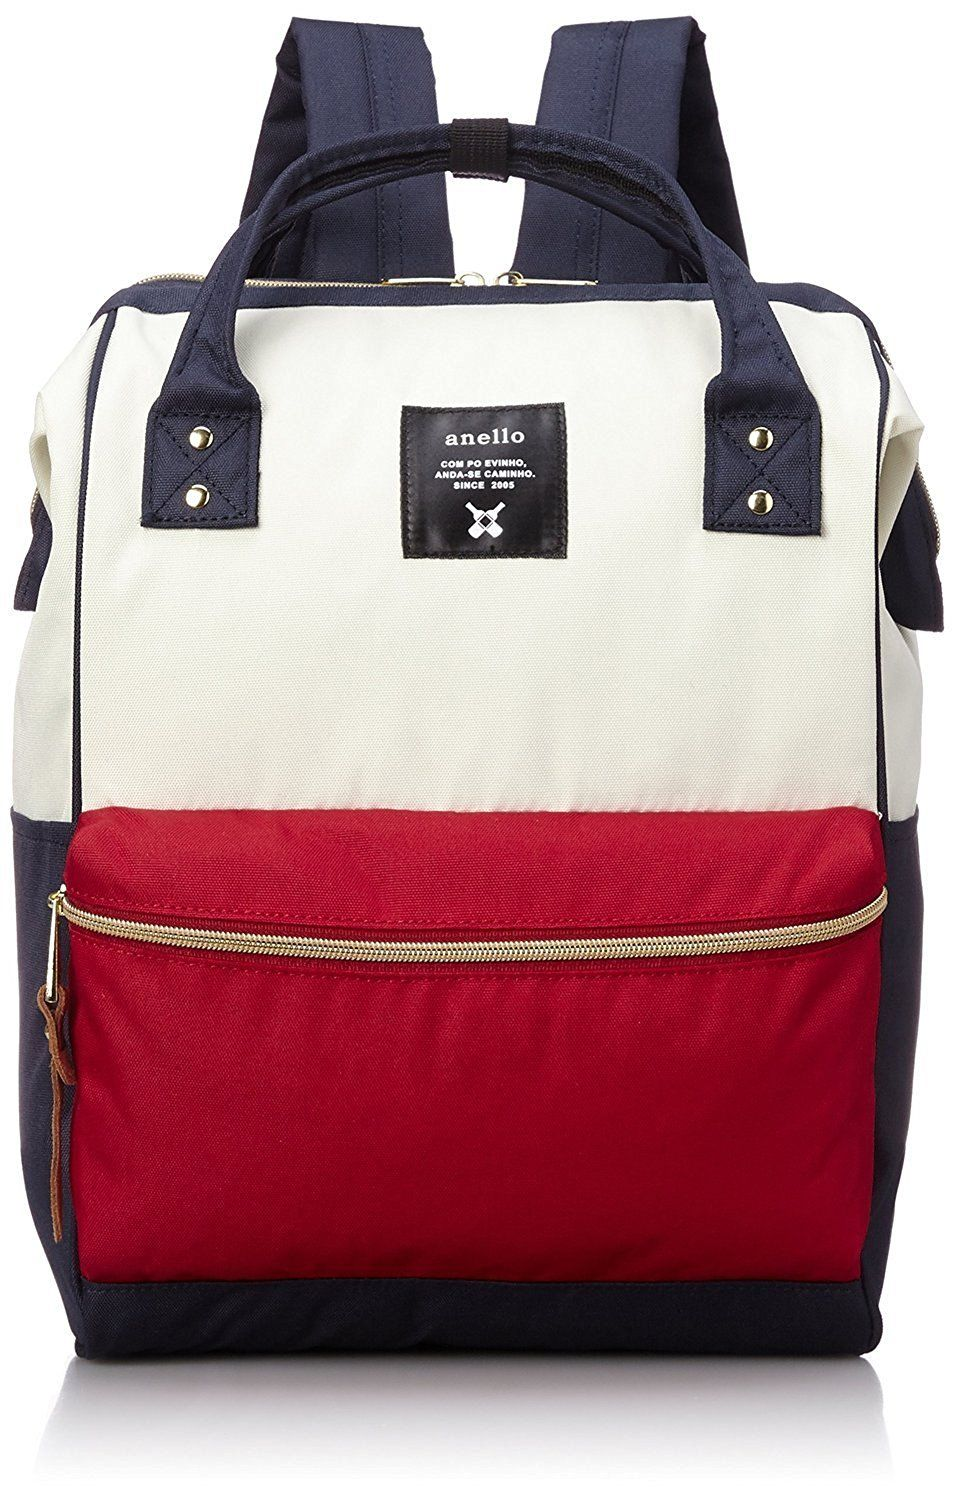 Buy 100% authentic Japan anello backpack (anello x the emporium ... 9ec5a8f0f4afb